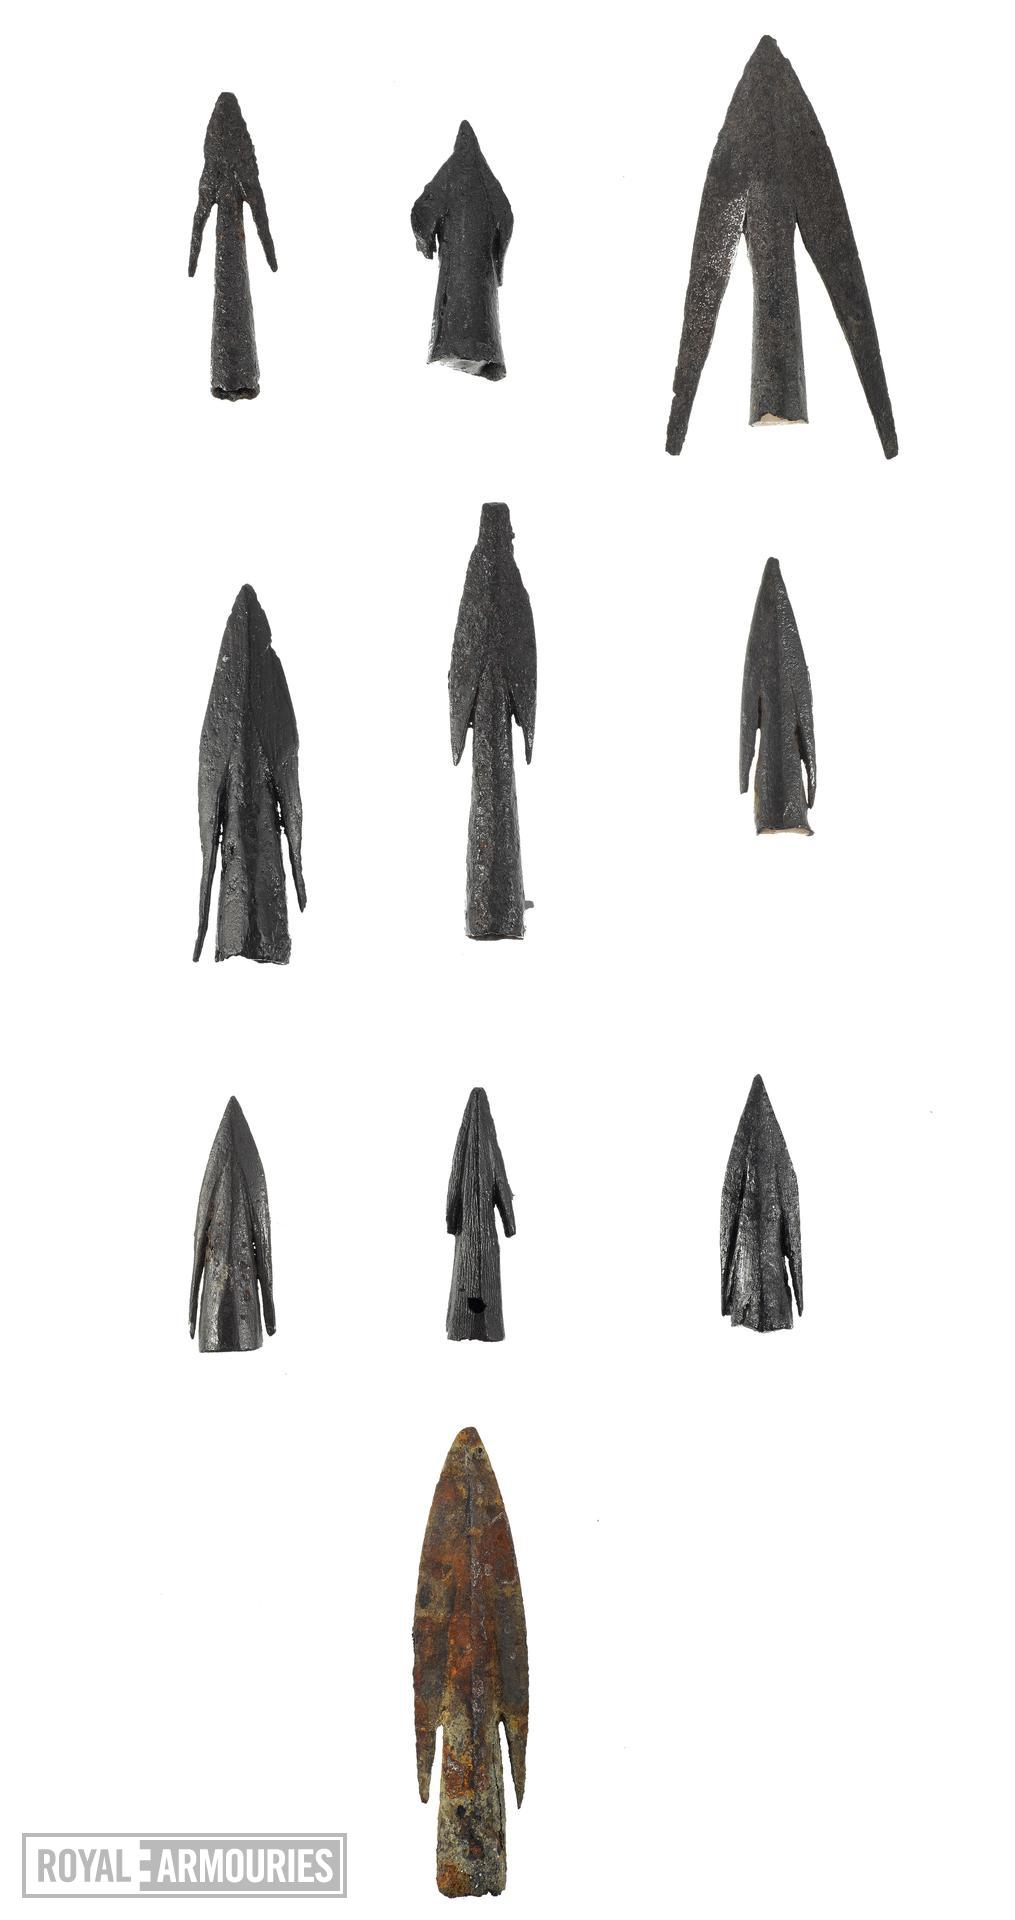 Collection of arrow heads, 11th to 15th centuries, English, from top left to bottom (XI.515, XI.516, XI.521, XI.522, XI.523, XI.526, XI.527, XI.528, XI.529, XI.296)